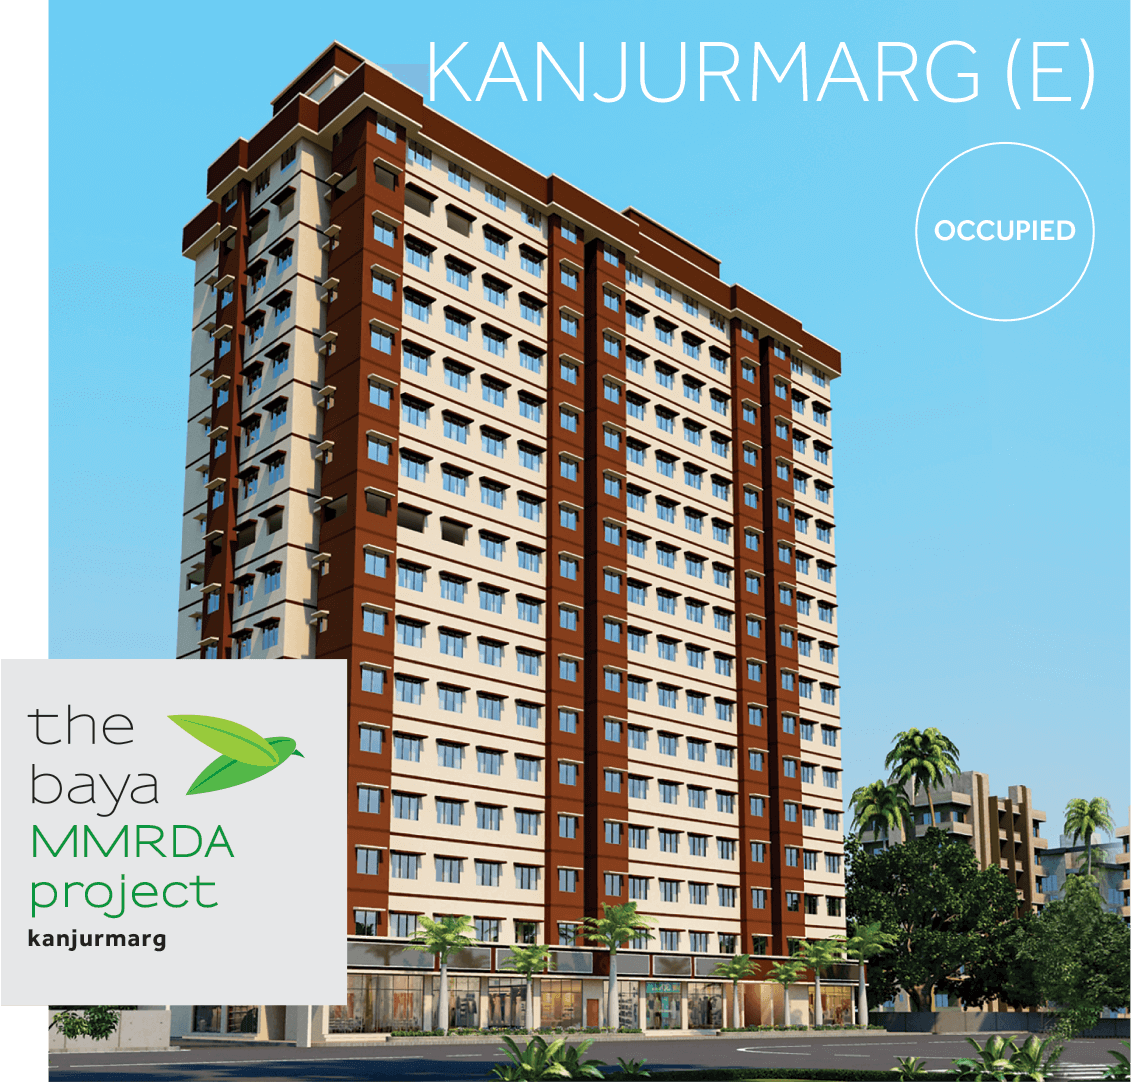 The Baya Mmrda Project Kanjurmarg